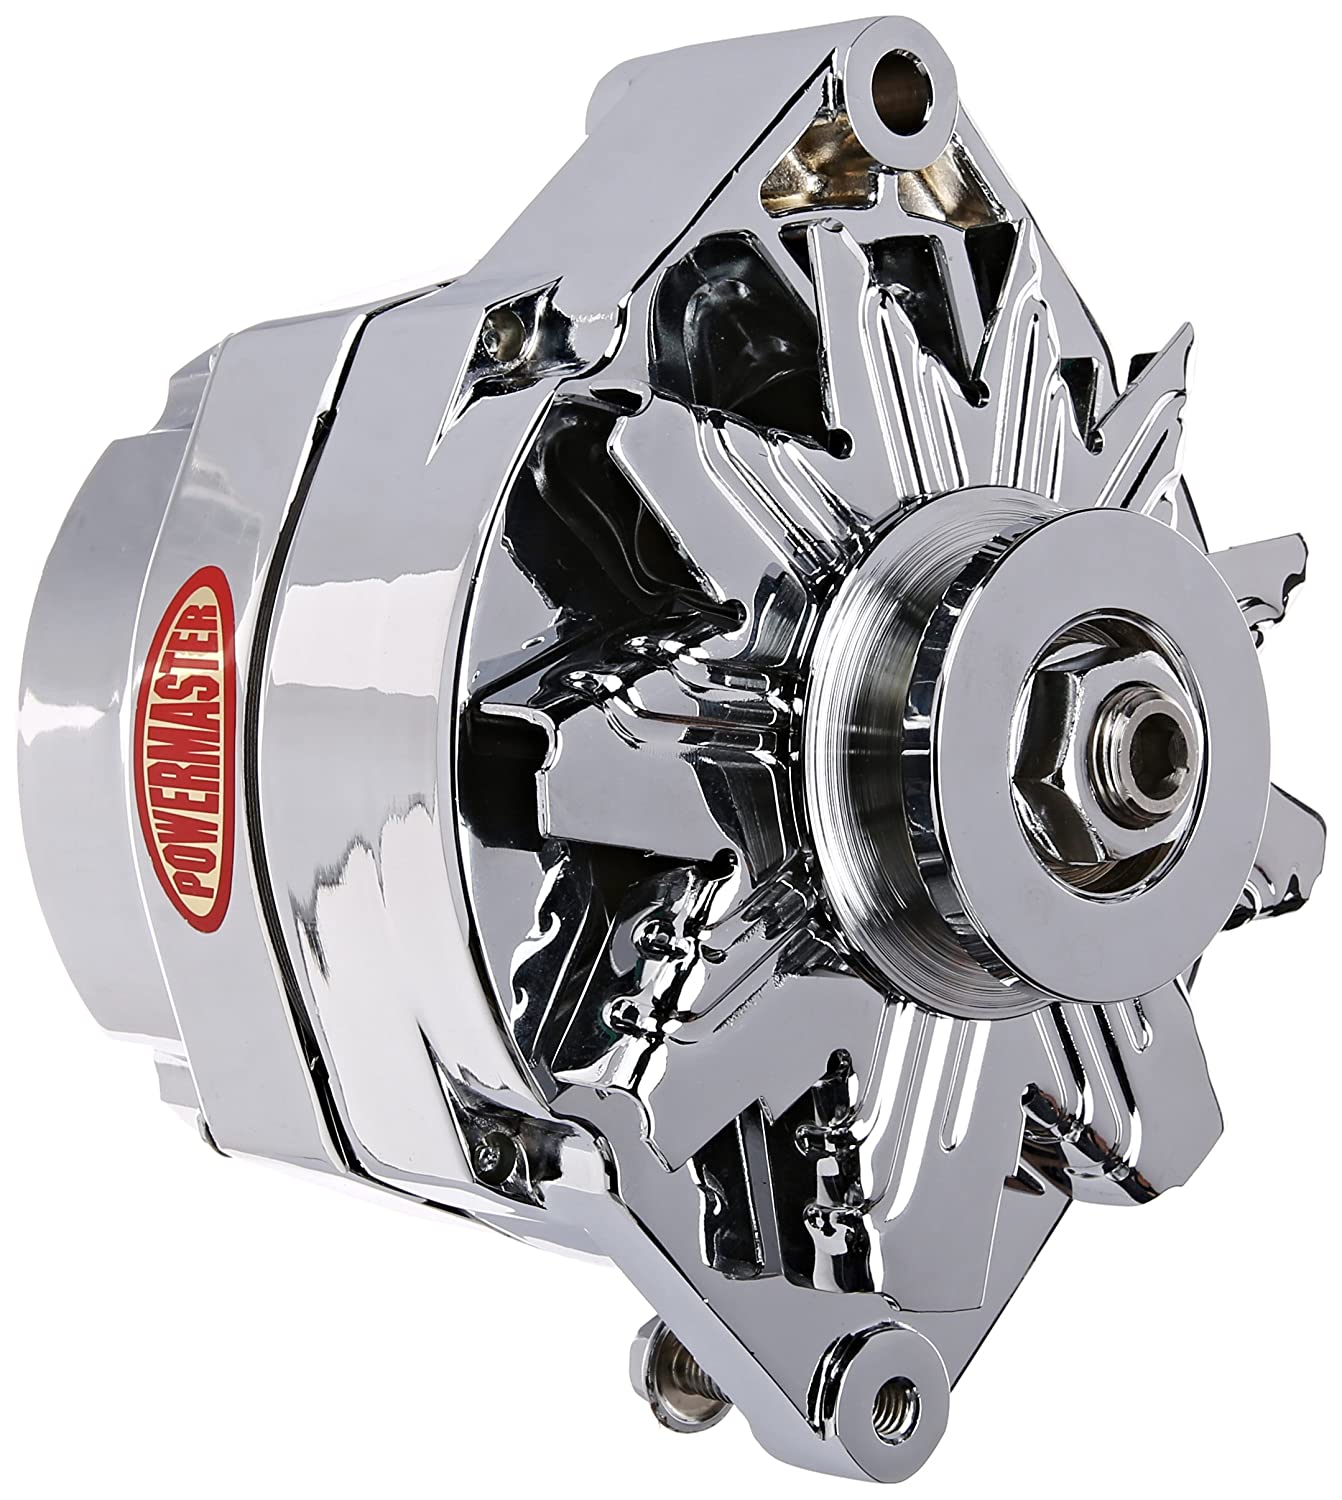 91wgauAM3pL._SL1500_ amazon com powermaster 17294 alternator automotive